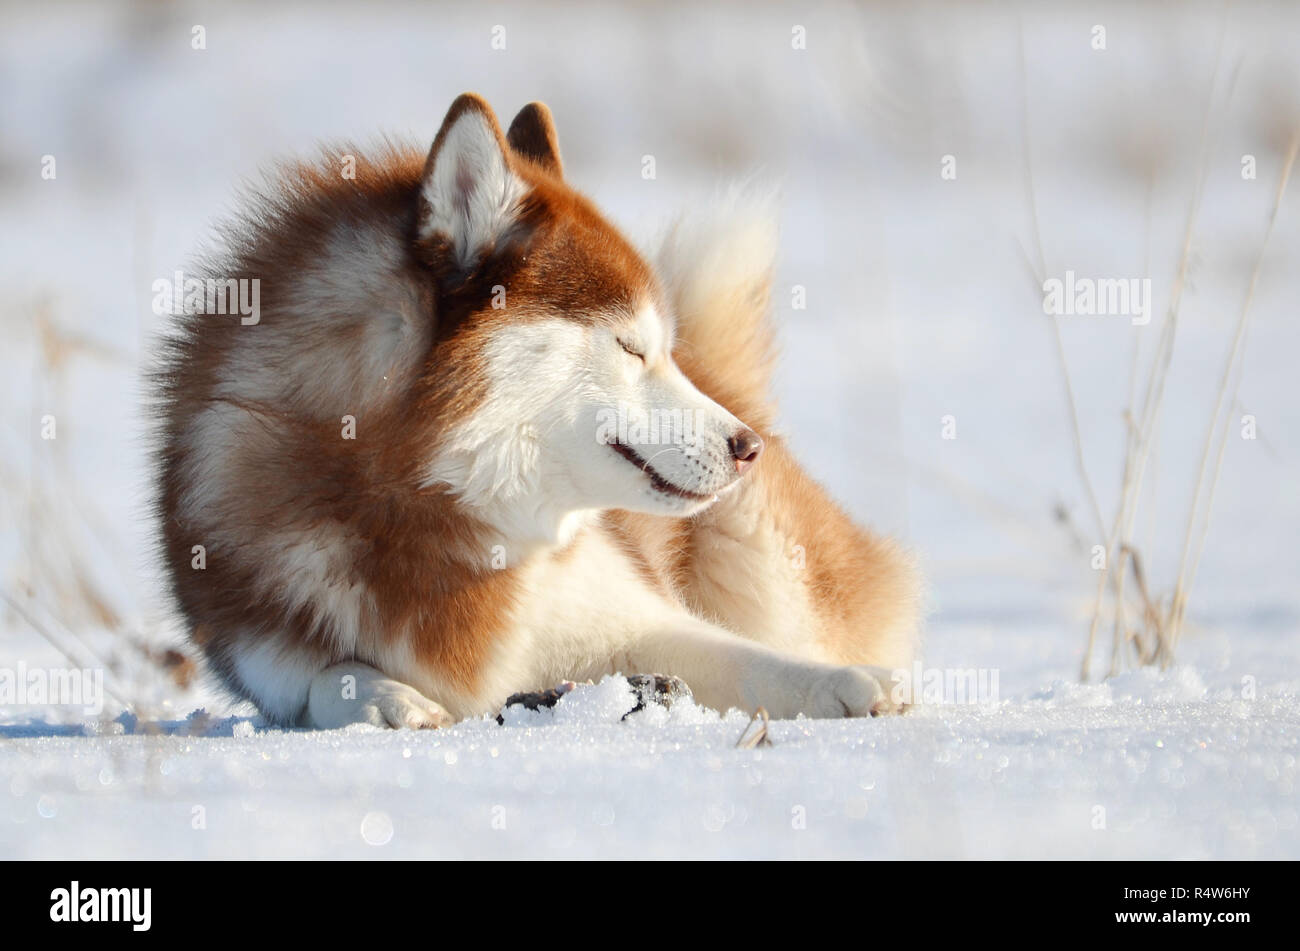 Smiling red dog husky laying on the snow. Winter outdoor - Stock Image